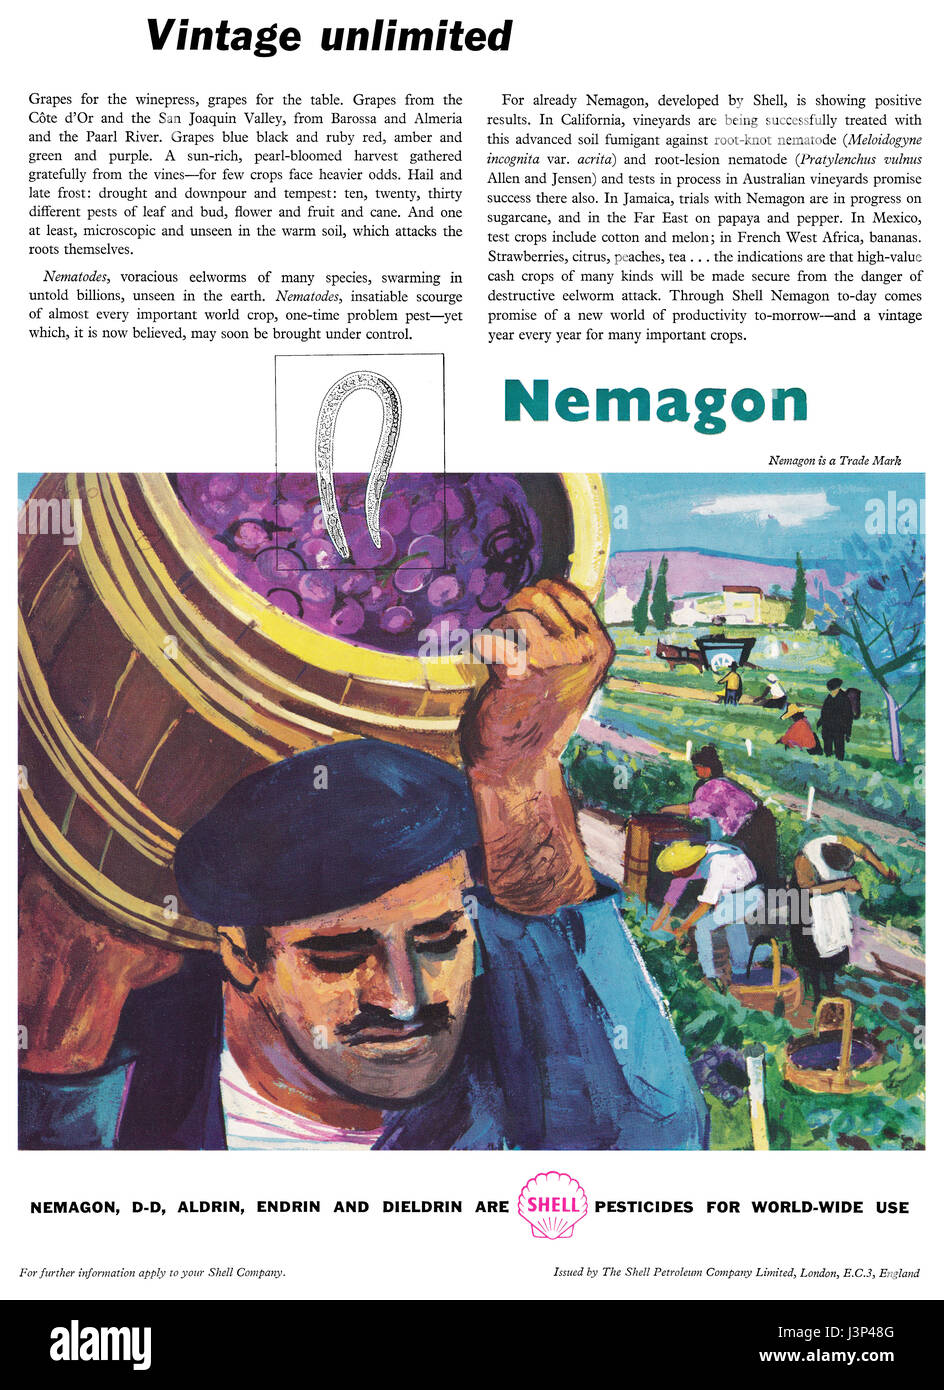 1958 British advertisement for Nemagon, a pesticide made by Shell. First synthesised in 1955 as a soil fumigant, - Stock Image